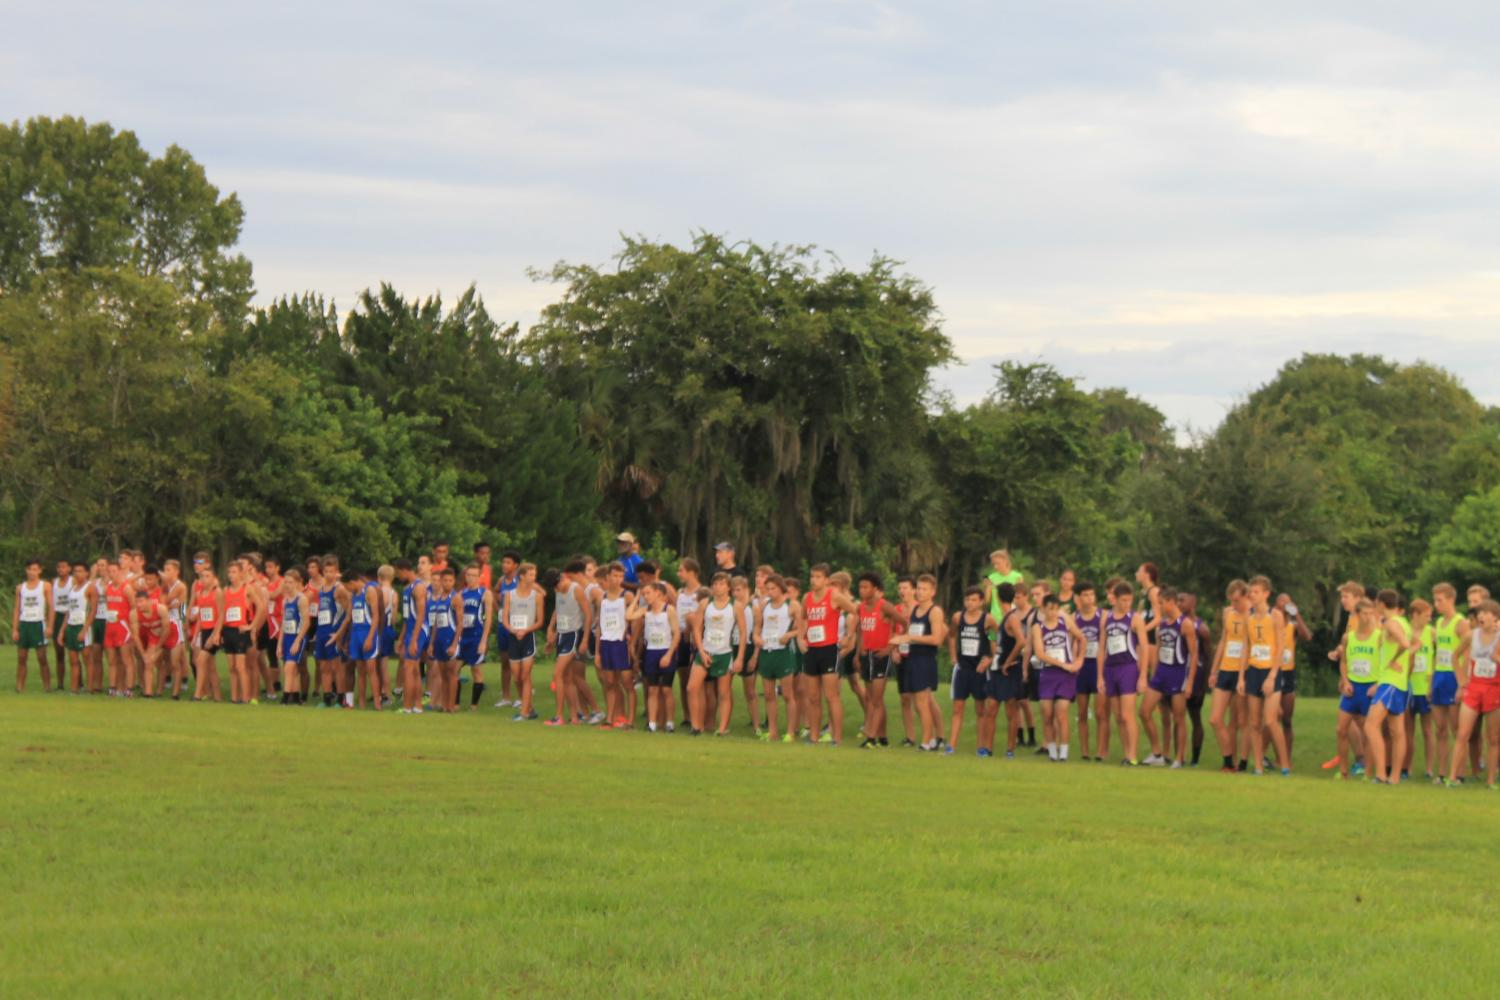 All cross country teams ready to race at the Winter Springs Invitational